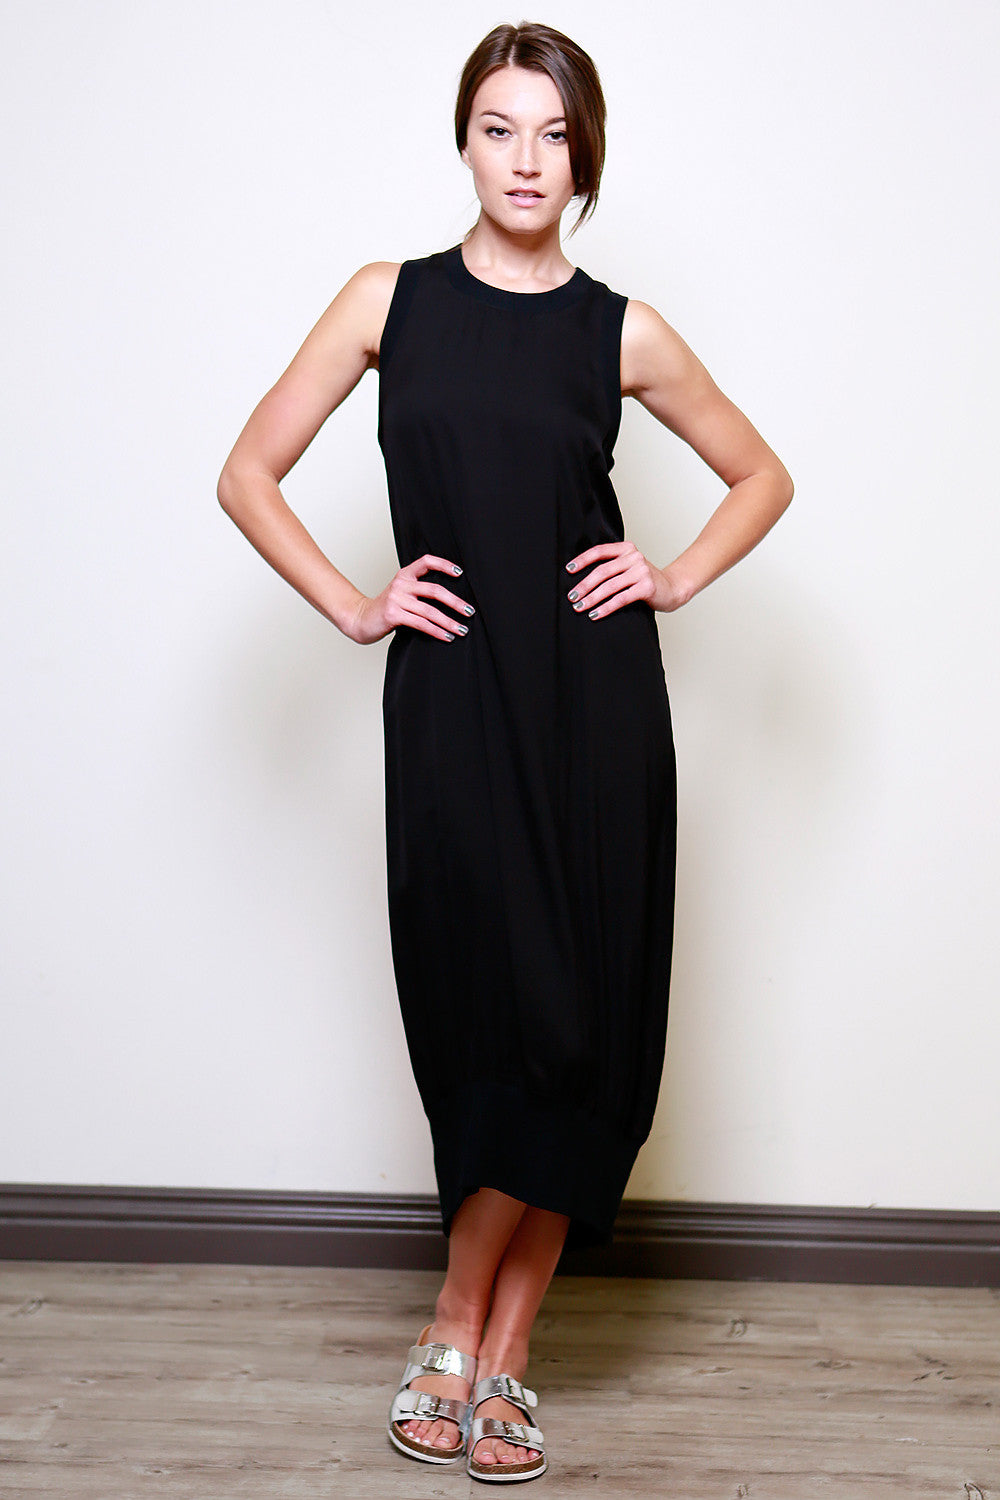 Gypsies-Sleeveless-Oversized-Casual-Maxi-Dress-Raquel-Allegra-Kaftan-Dres-Zara-Long-Dress-Rachel-Pally-Maxi-Dress-Shopbop-topshop-nordstrom-miss-selfridge-house-of-frasier-whistles-black-front view